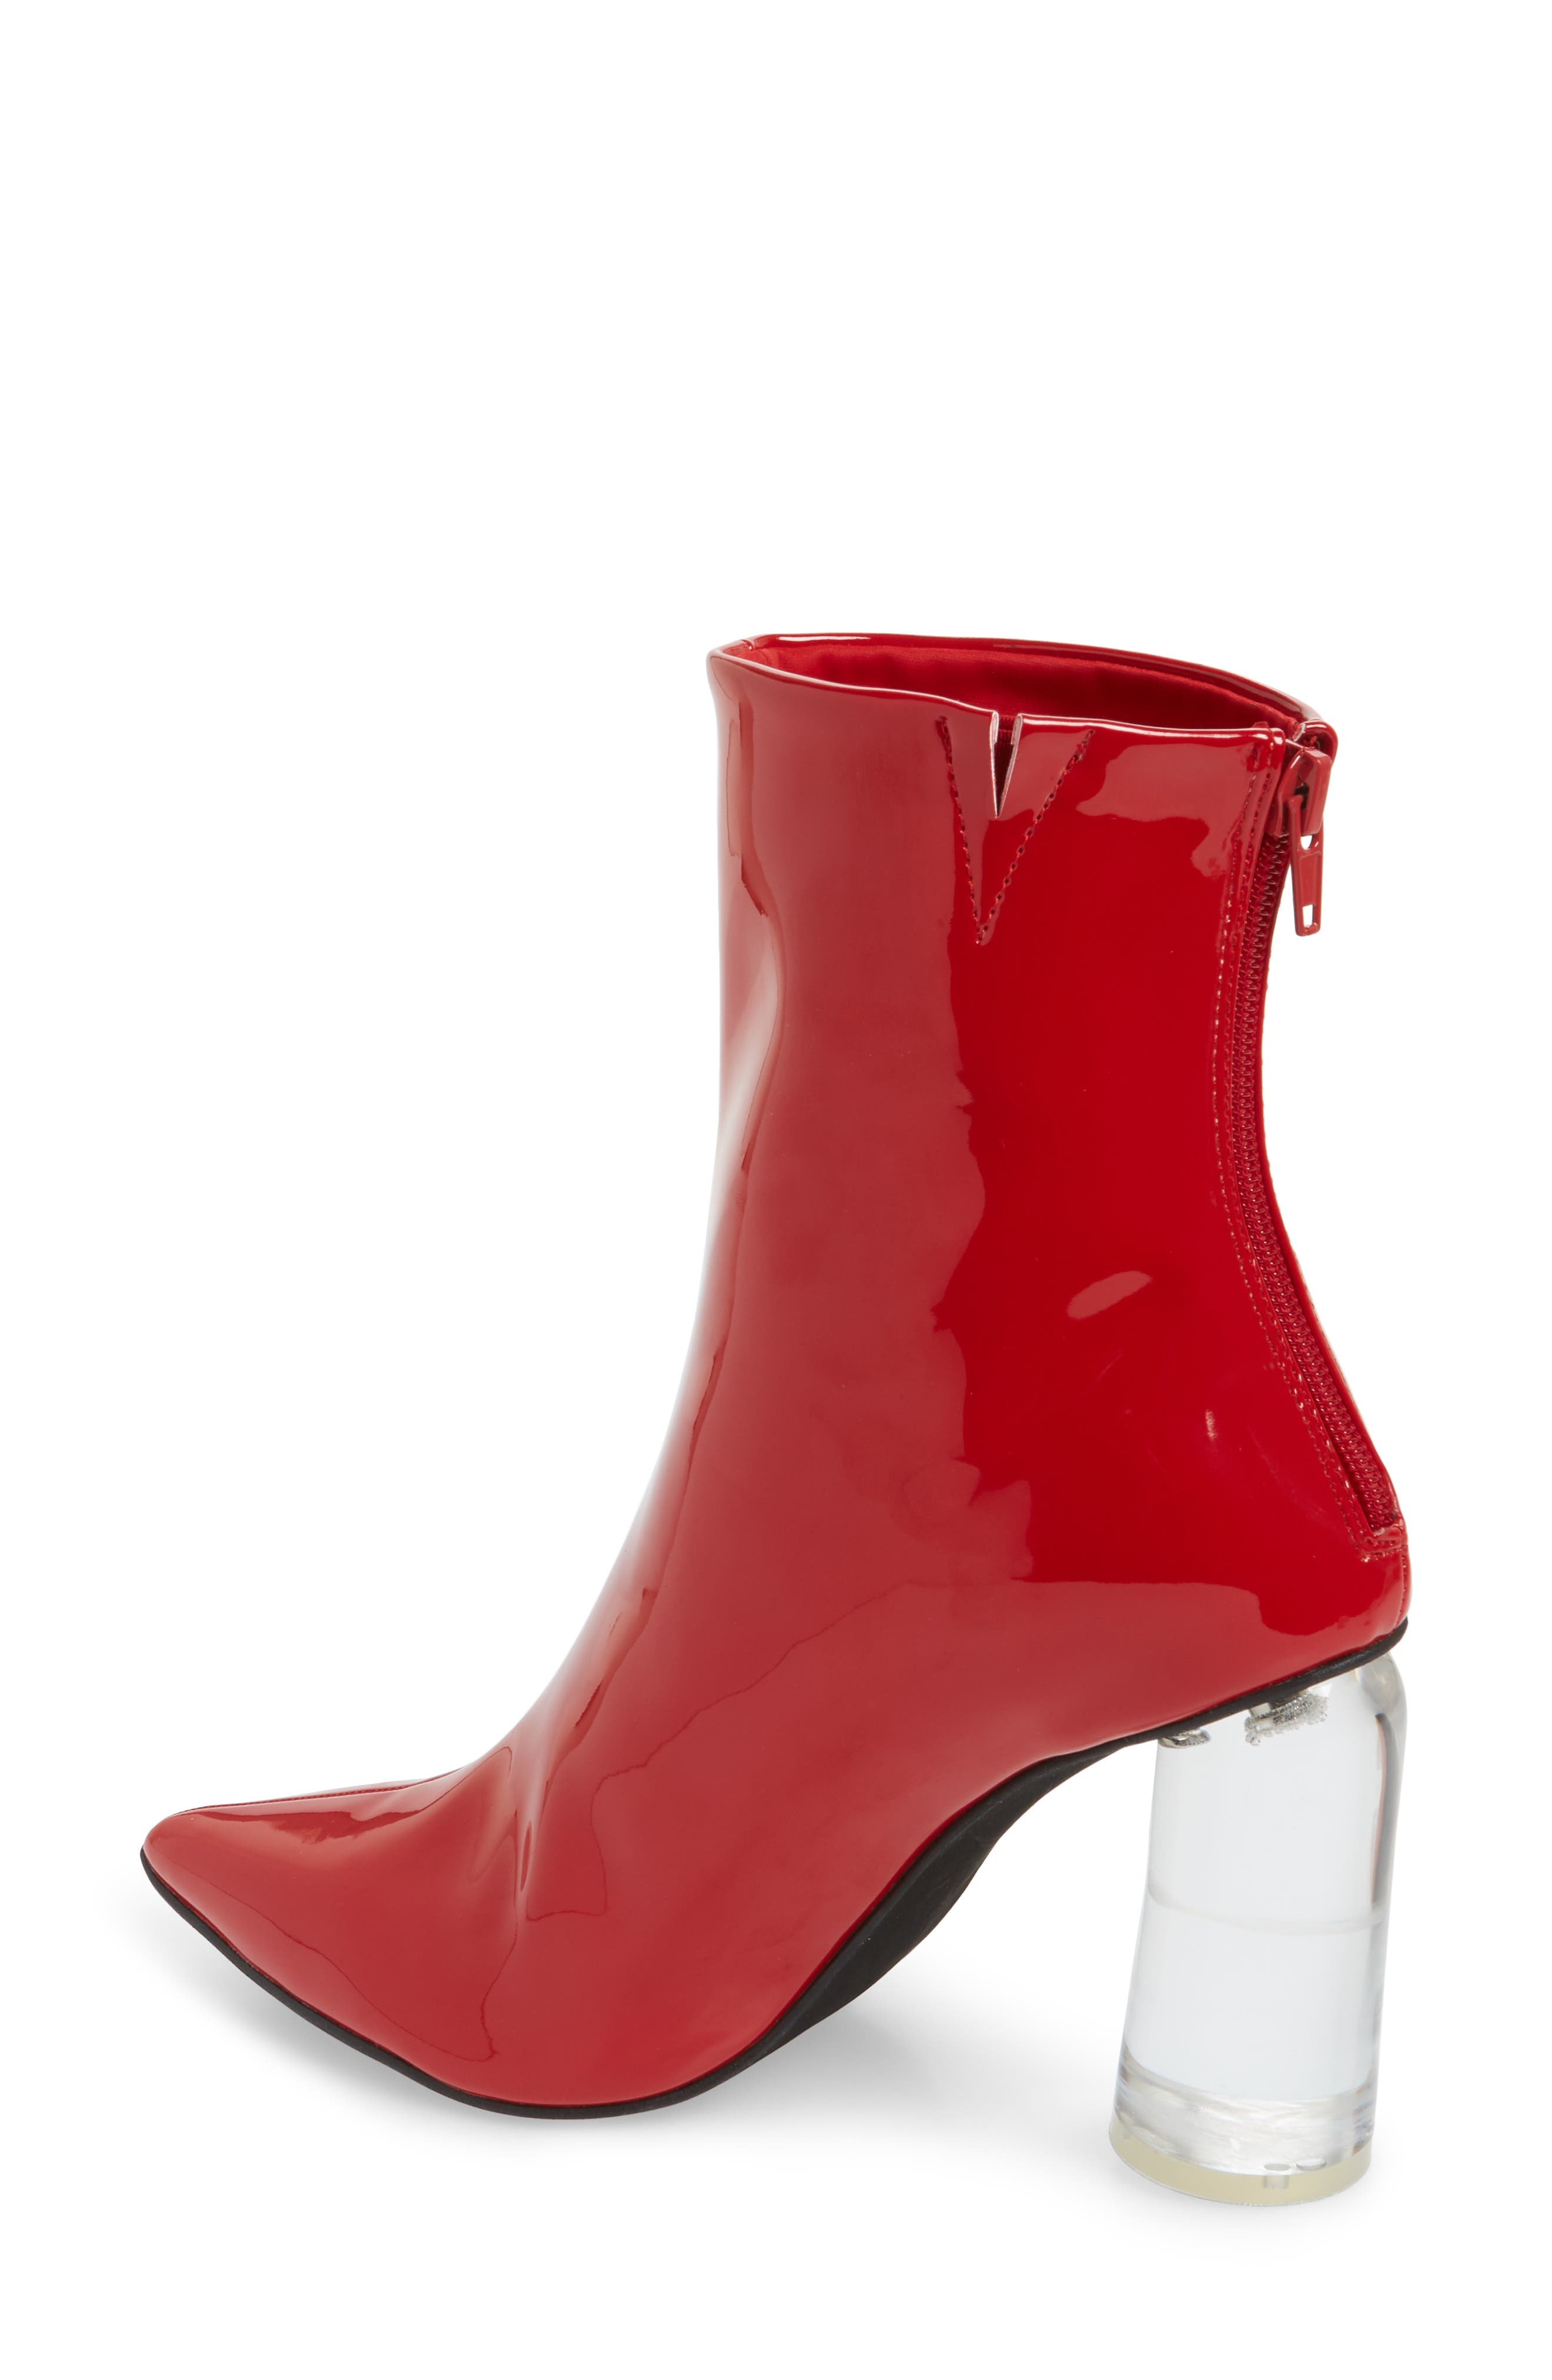 Lustrous Column Heel Bootie,                             Alternate thumbnail 2, color,                             Red Patent Leather/ Clear